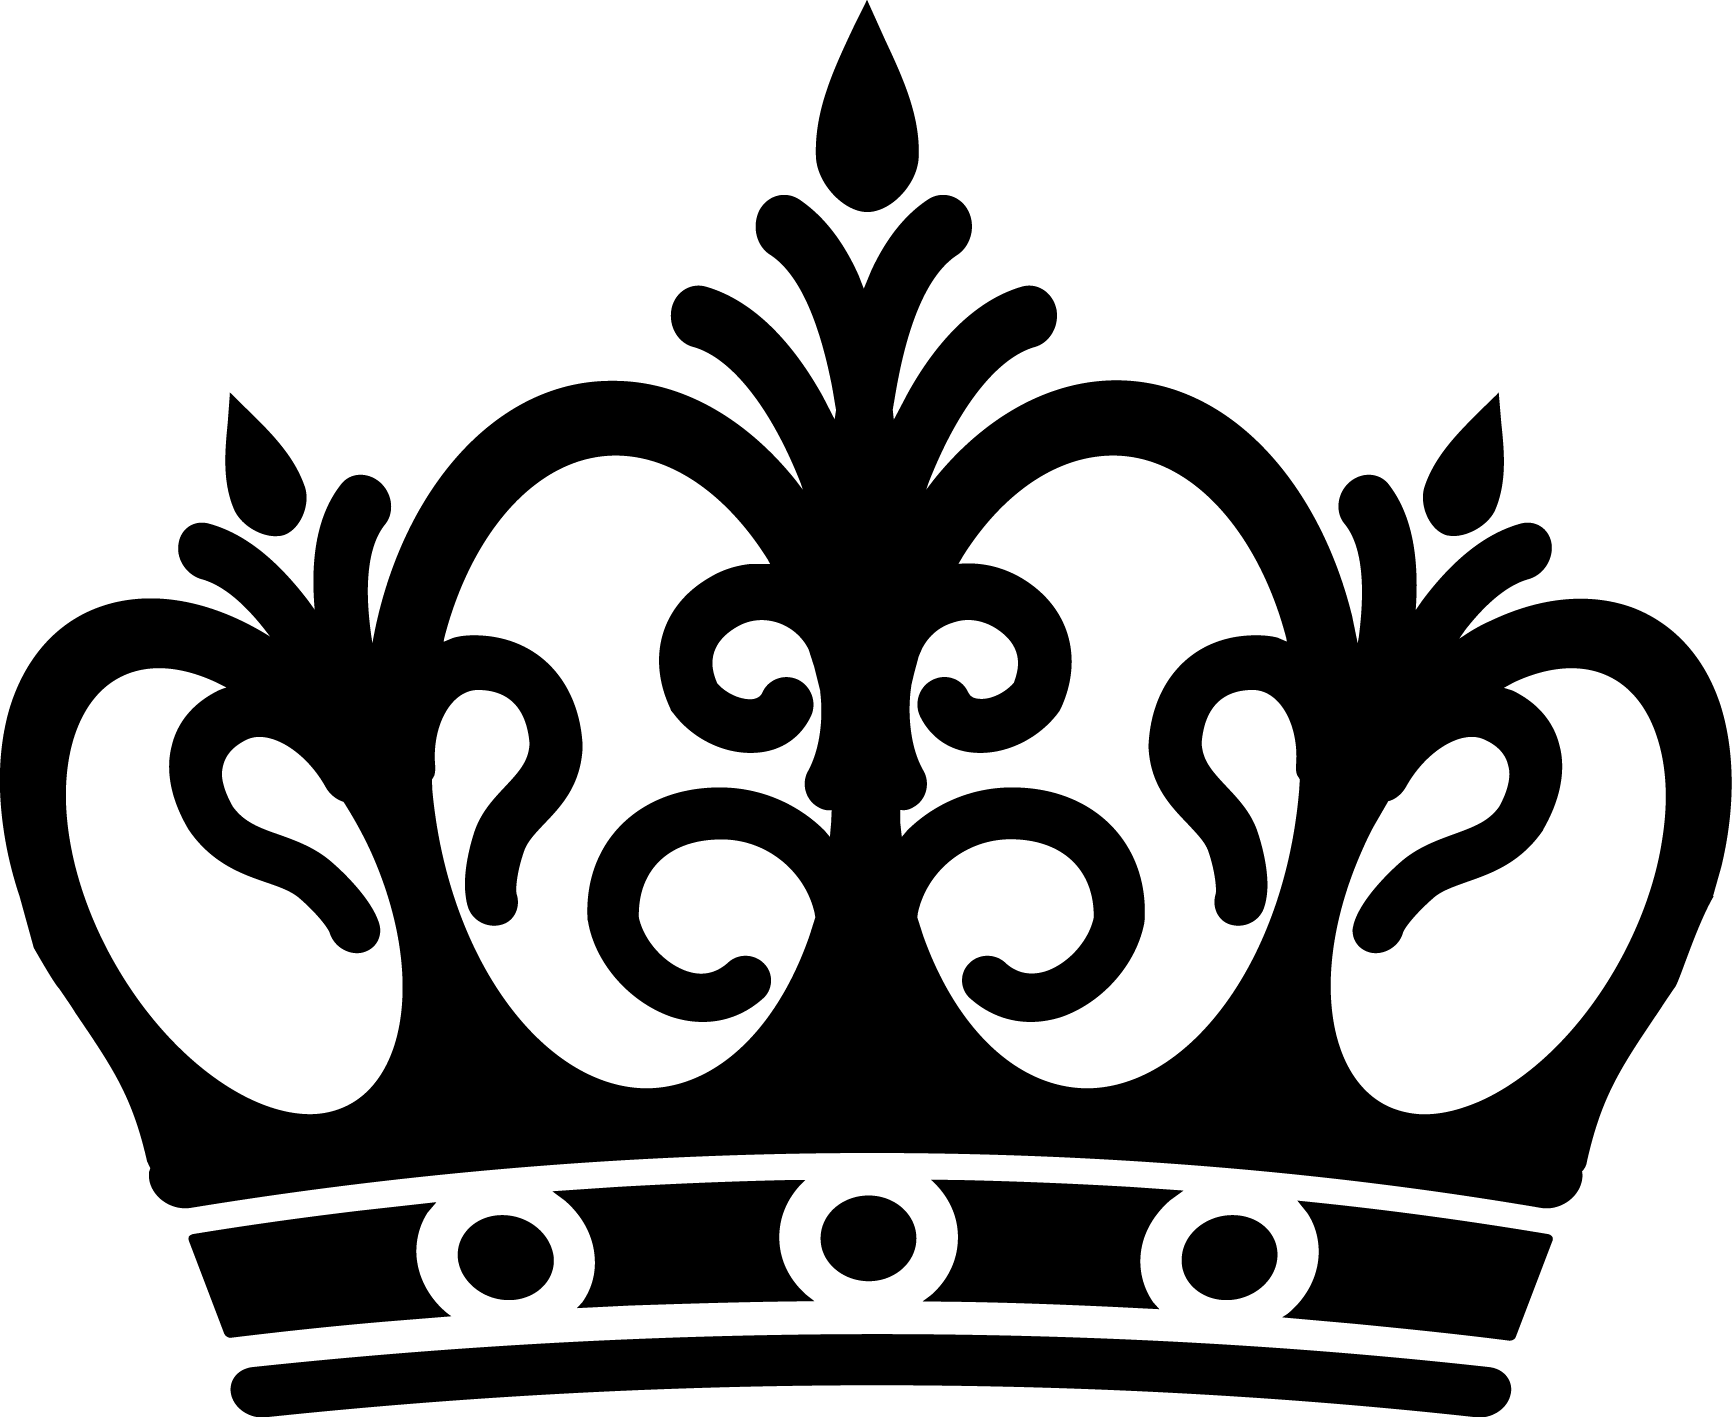 Queen crown transparent background. Crowns clipart pastel